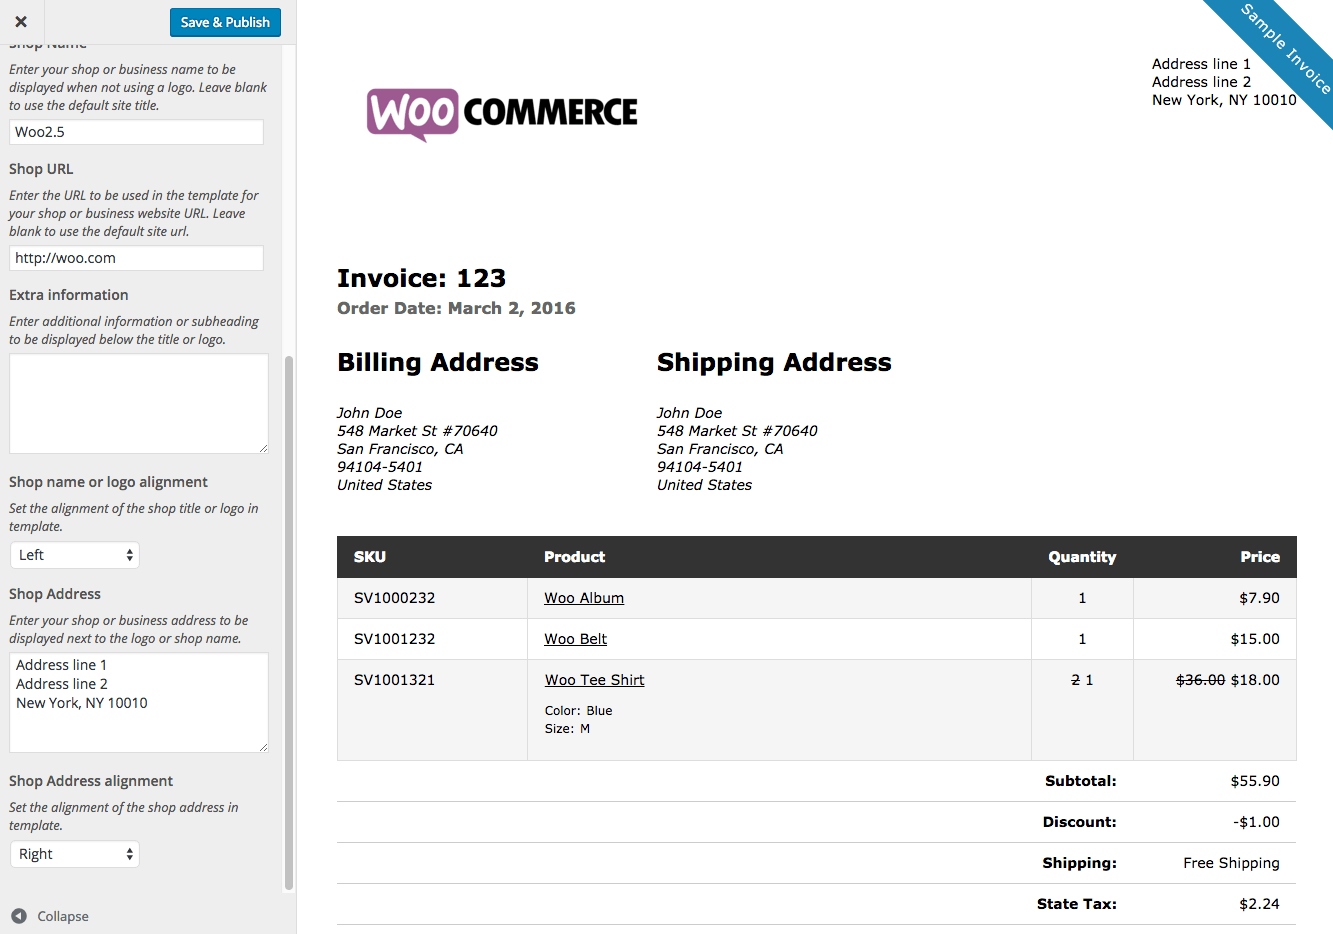 Maidofhonortoastus  Winsome Woocommerce Print Invoices Amp Packing Lists  Woocommerce Docs With Handsome Woocommerce Print Invoices  Packing Lists Customizer With Nice Invoice Of Purchase Also Invoice Notes Sample In Addition Invoicing Clerk Jobs And Invoice Dashboard As Well As Invoice Books Printing Additionally Sales Invoice Template Free Download From Docswoocommercecom With Maidofhonortoastus  Handsome Woocommerce Print Invoices Amp Packing Lists  Woocommerce Docs With Nice Woocommerce Print Invoices  Packing Lists Customizer And Winsome Invoice Of Purchase Also Invoice Notes Sample In Addition Invoicing Clerk Jobs From Docswoocommercecom